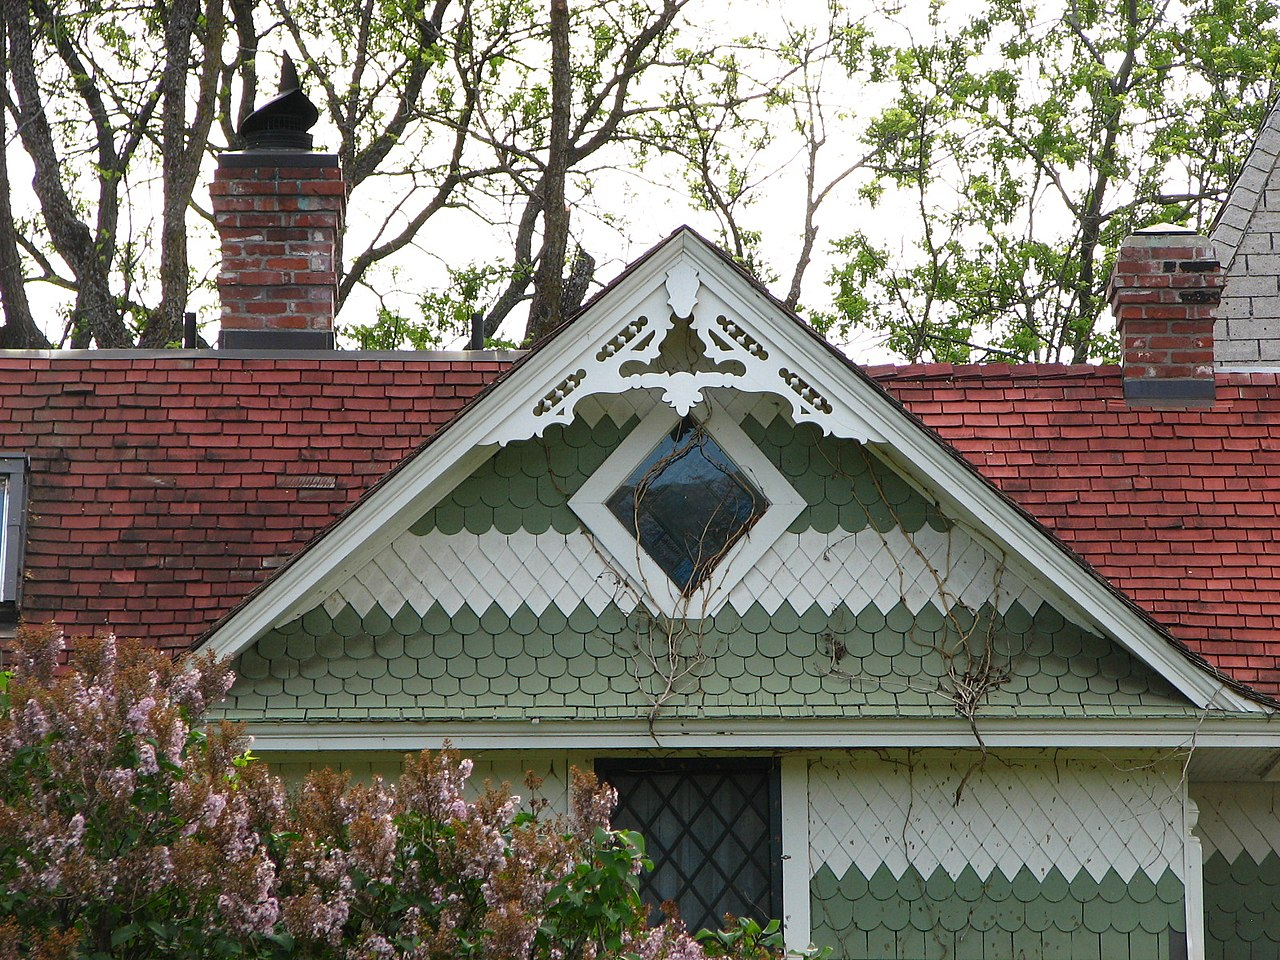 file mosier house gable detail mosier wikimedia commons. Black Bedroom Furniture Sets. Home Design Ideas